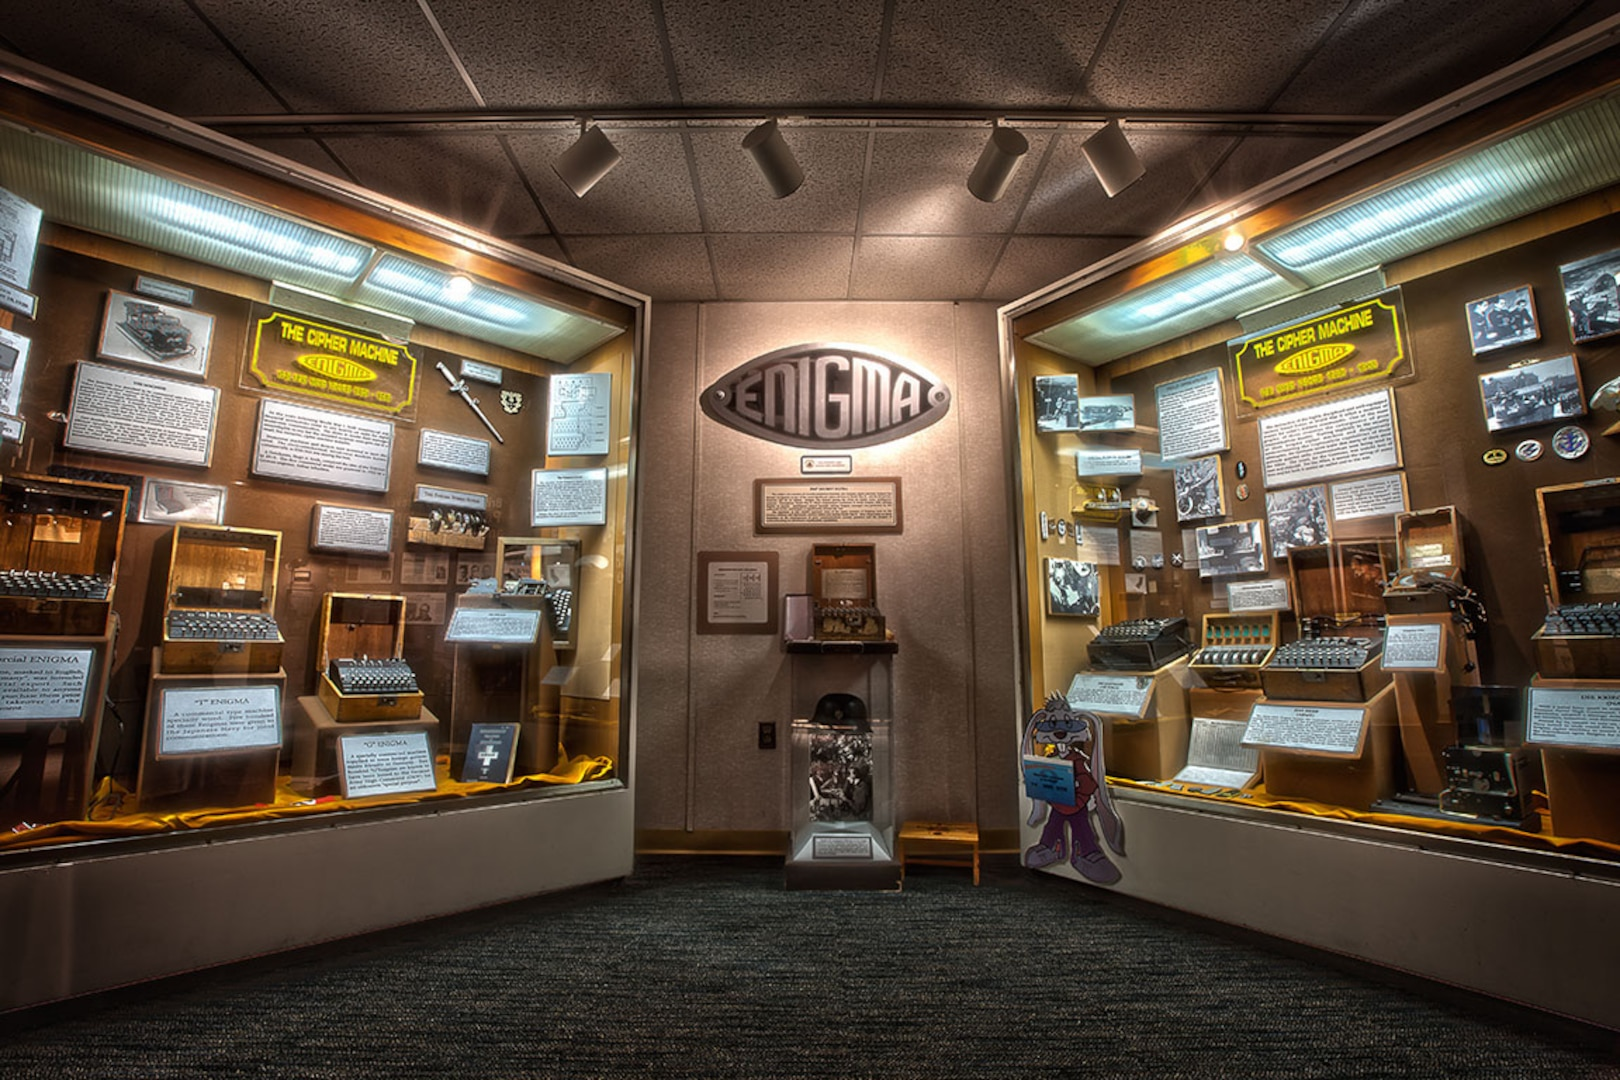 Visit NSA's National Cryptologic Museum to see an authentic Enigma